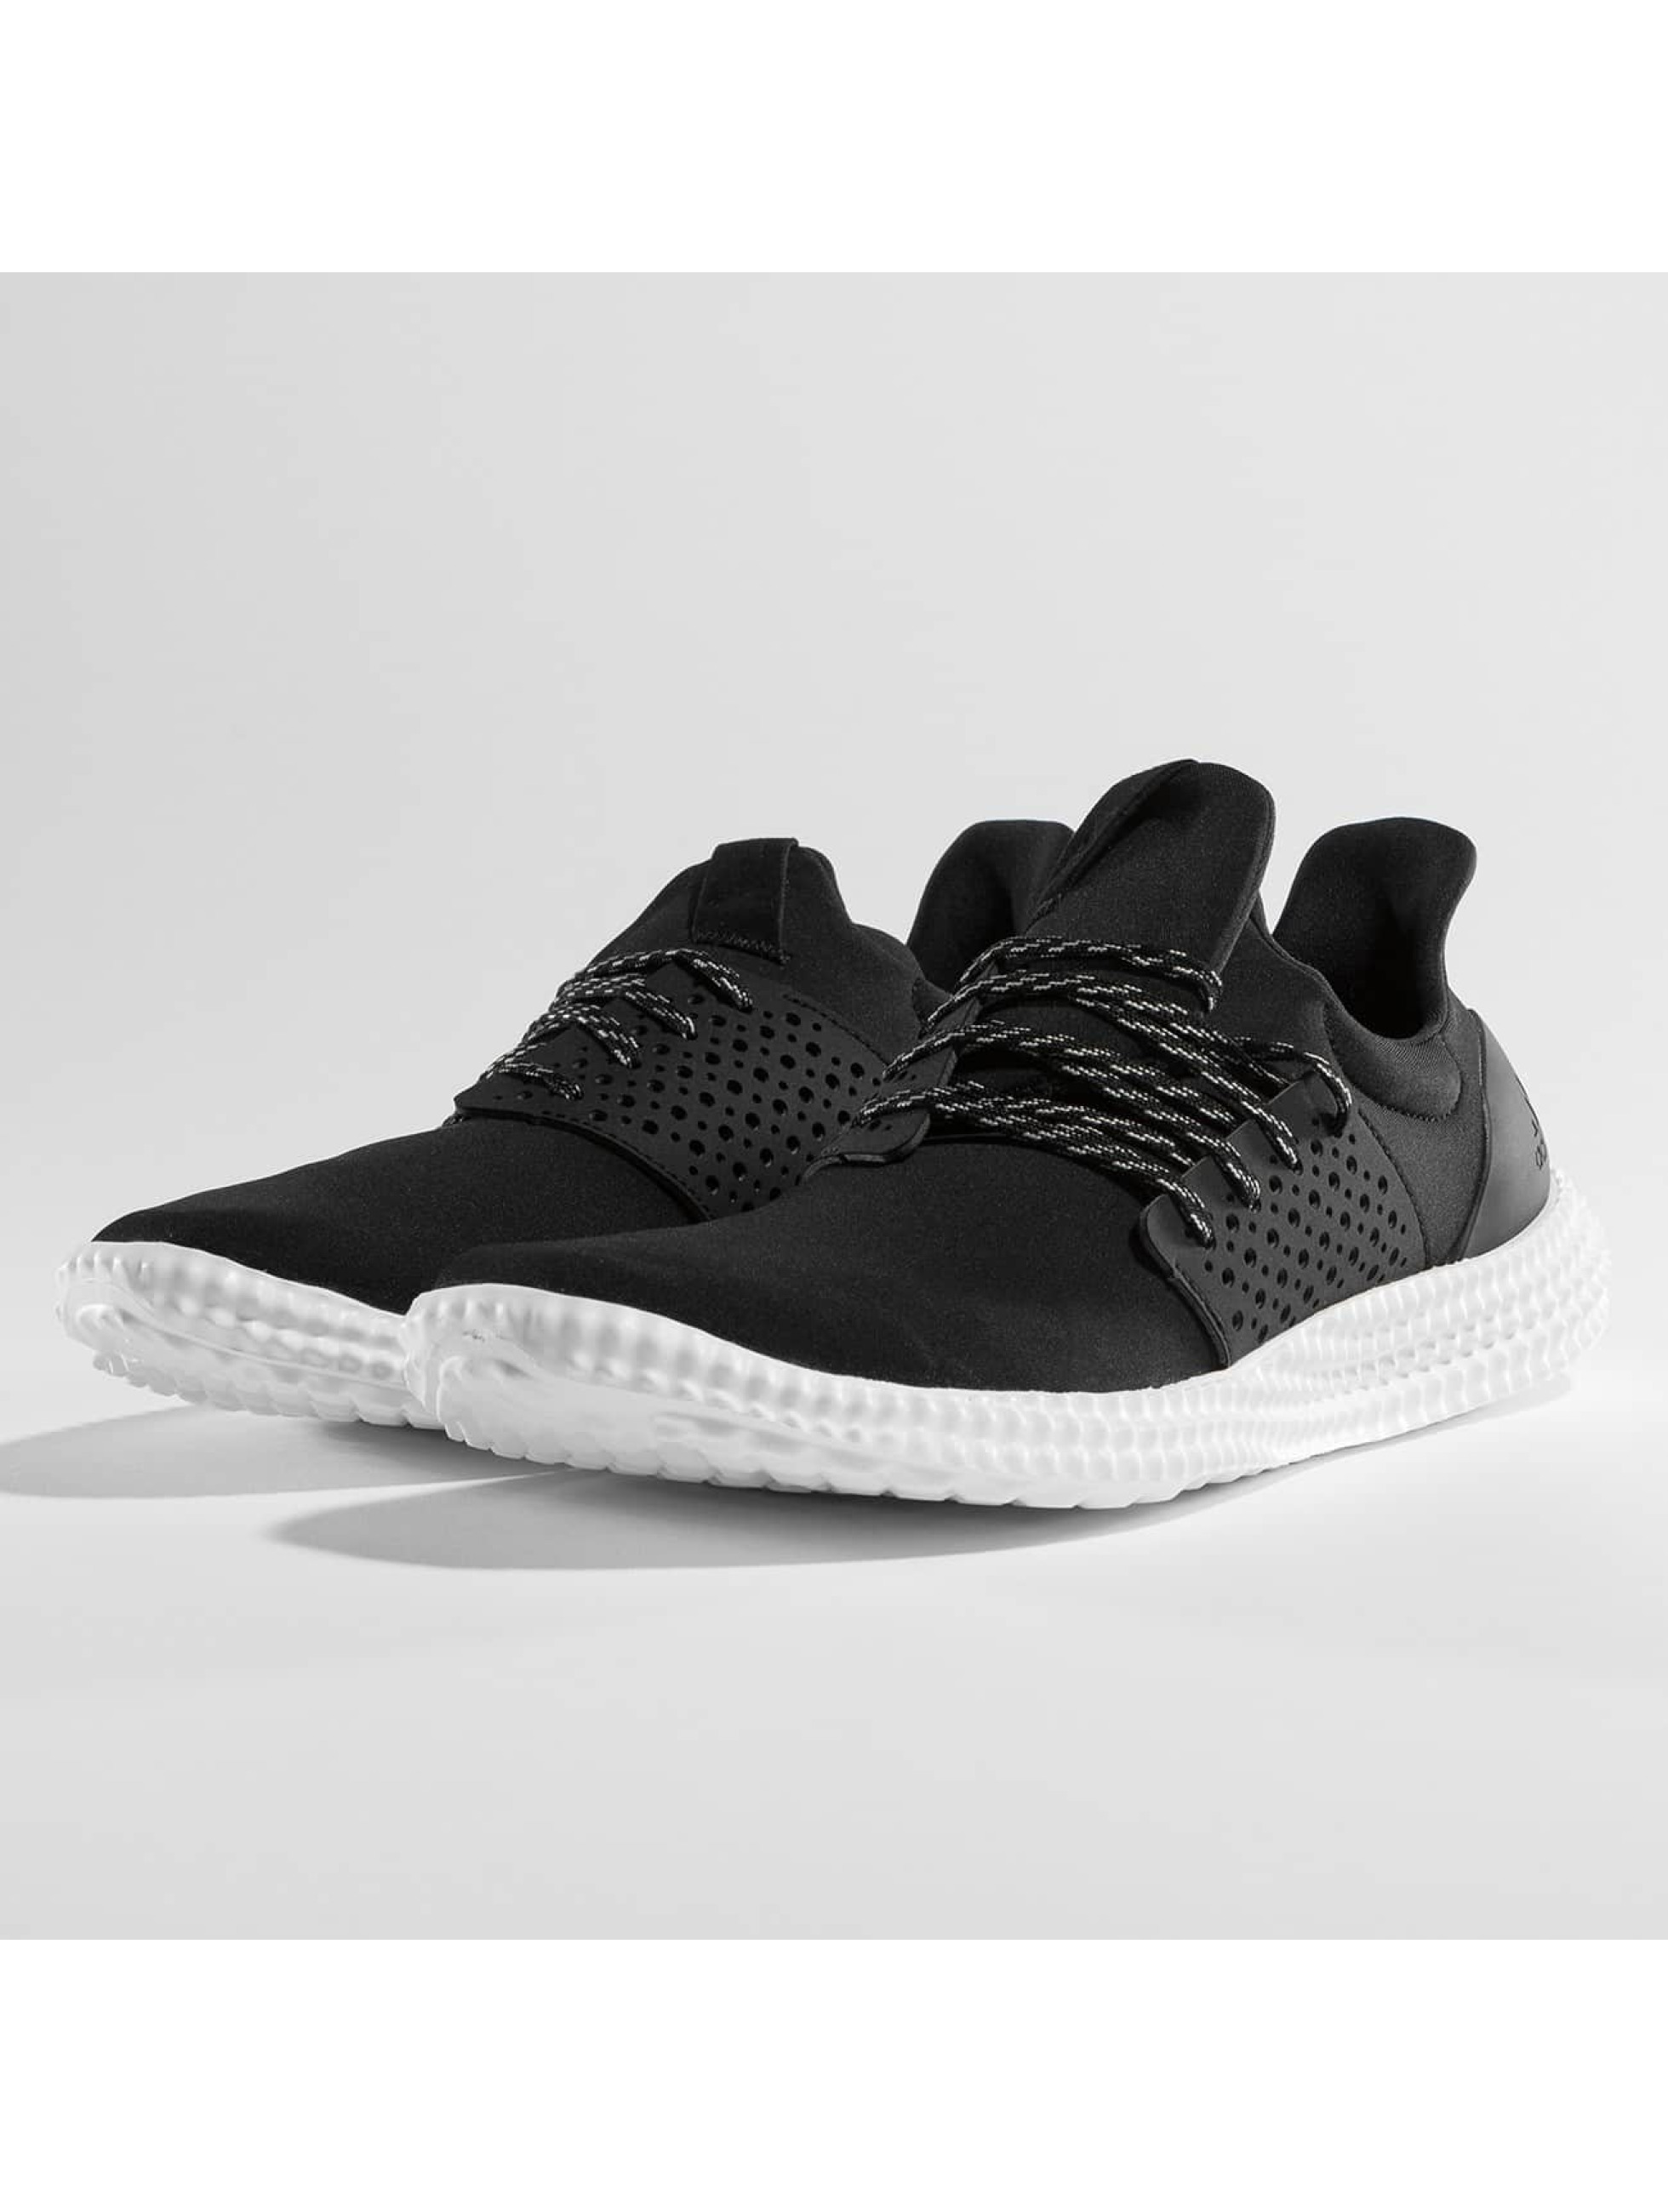 adidas Performance Männer Sneaker Athletics in schwarz